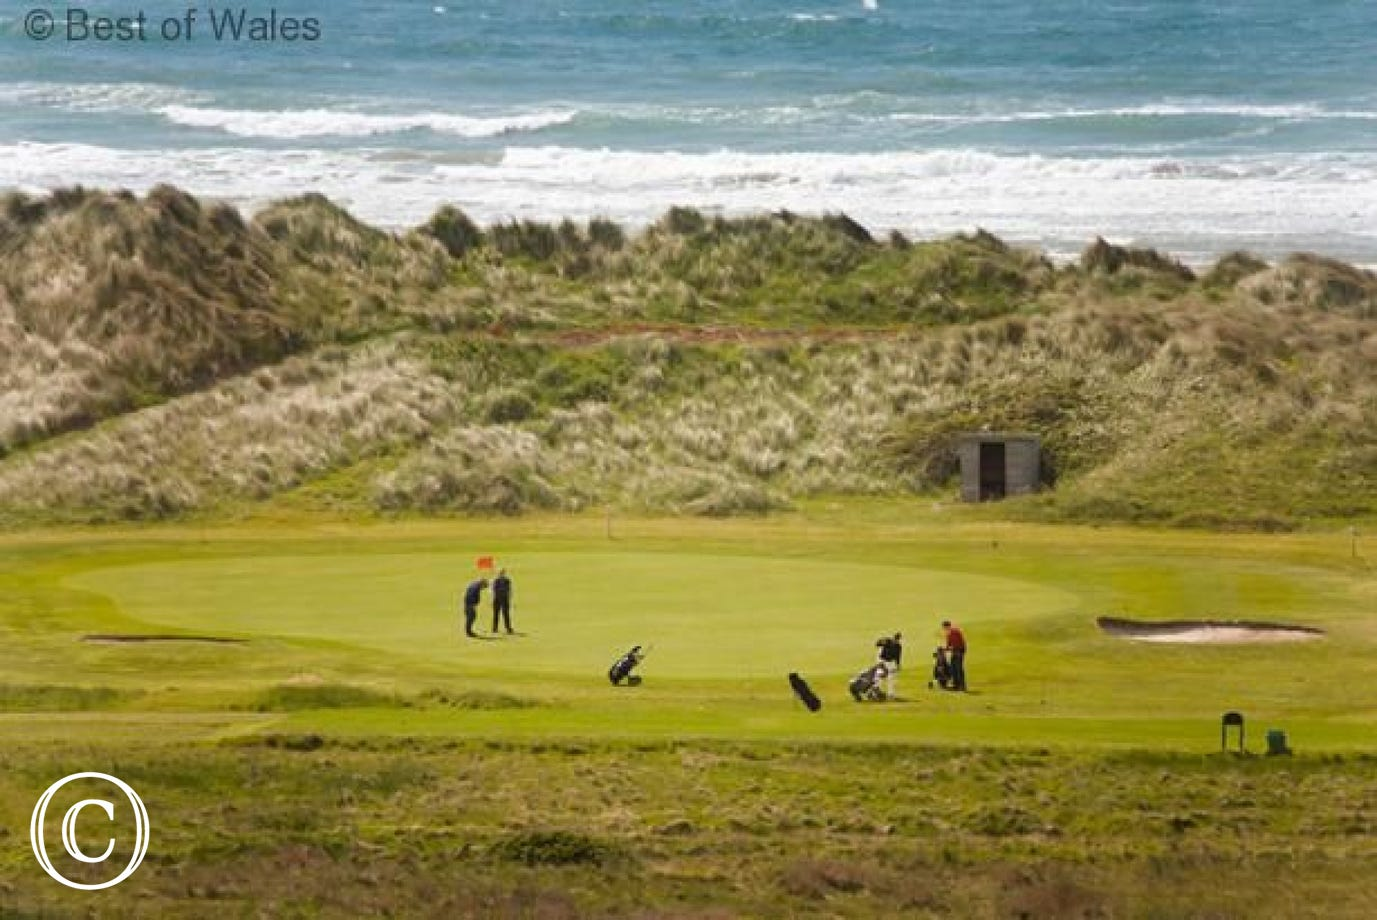 Aberdyfi (9 miles) also has a renowned 18 hole golf course.